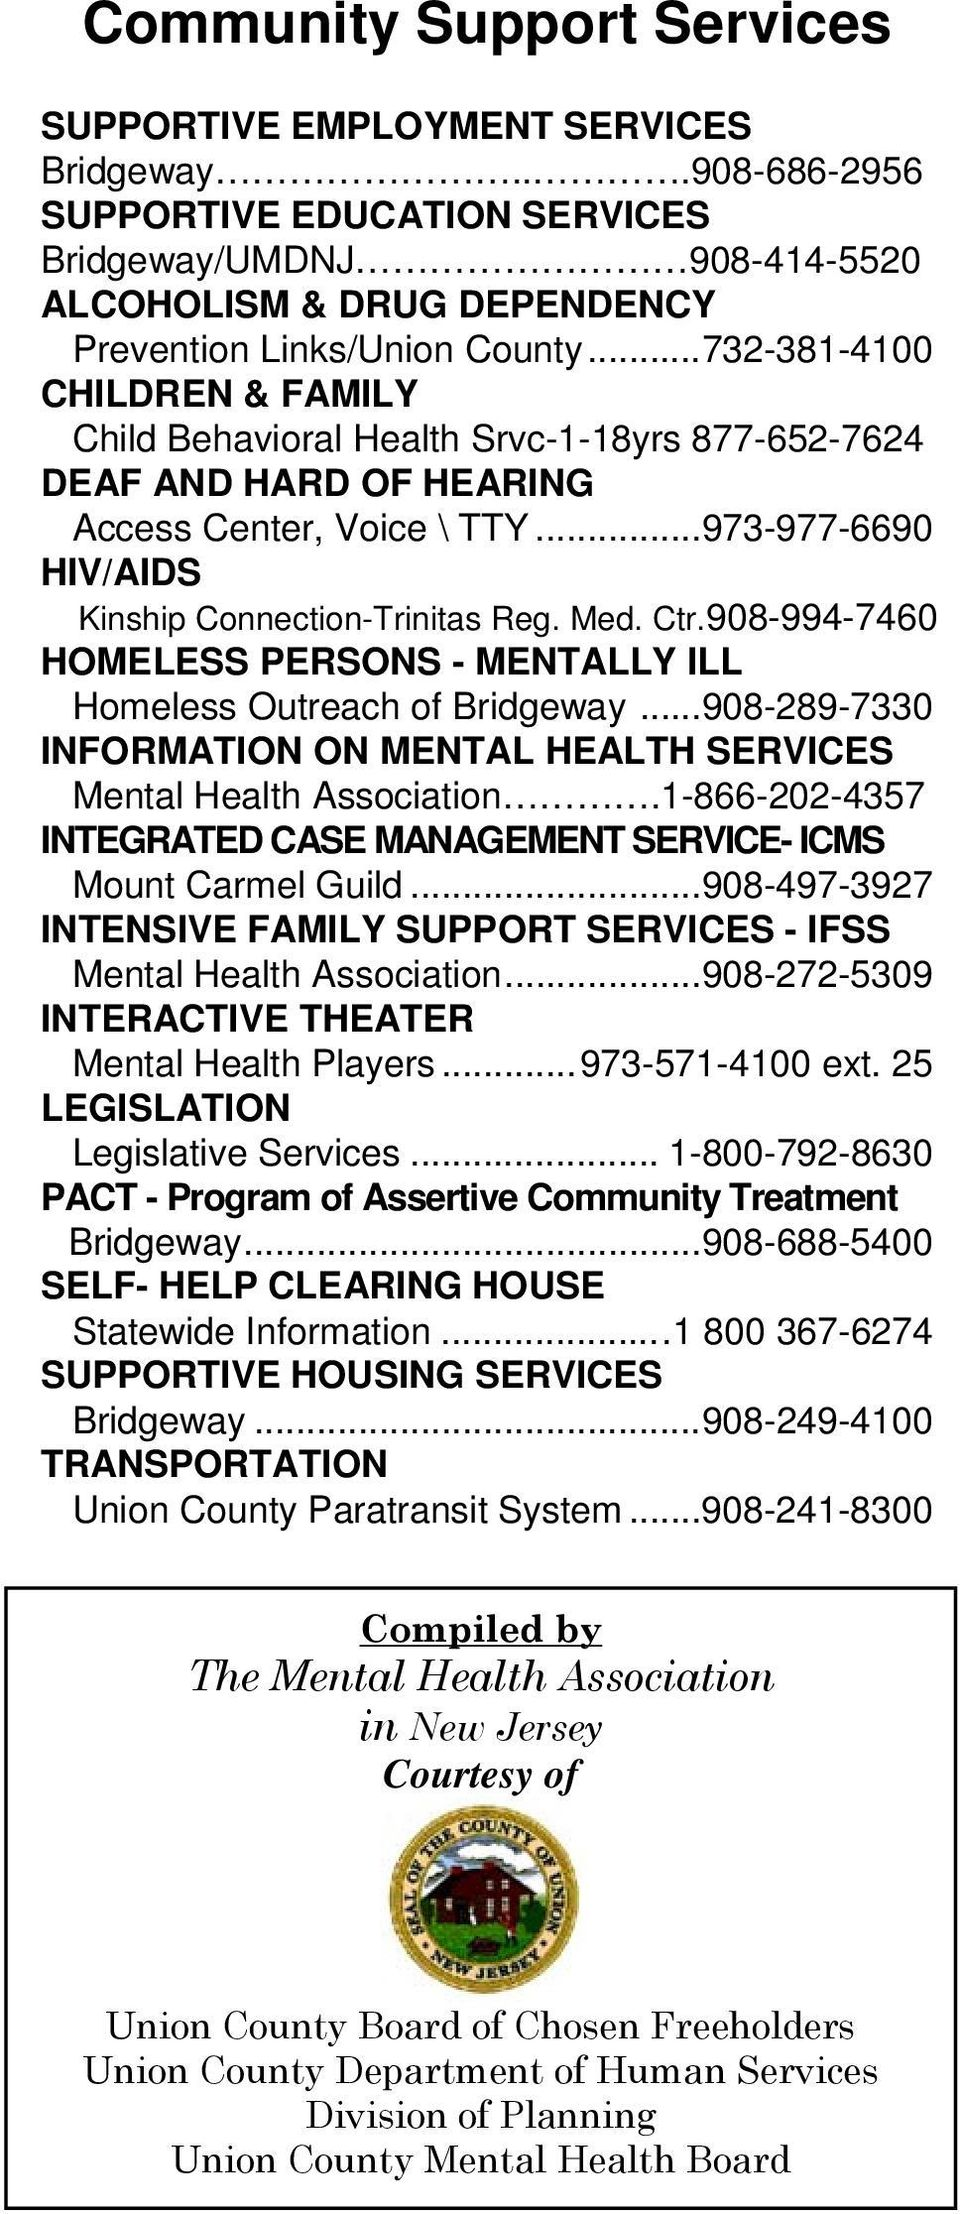 Ctr.908-994-7460 HOMELESS PERSONS - MENTALLY ILL Homeless Outreach of Bridgeway... 908-289-7330 INFORMATION ON MENTAL HEALTH SERVICES Mental Health Association.